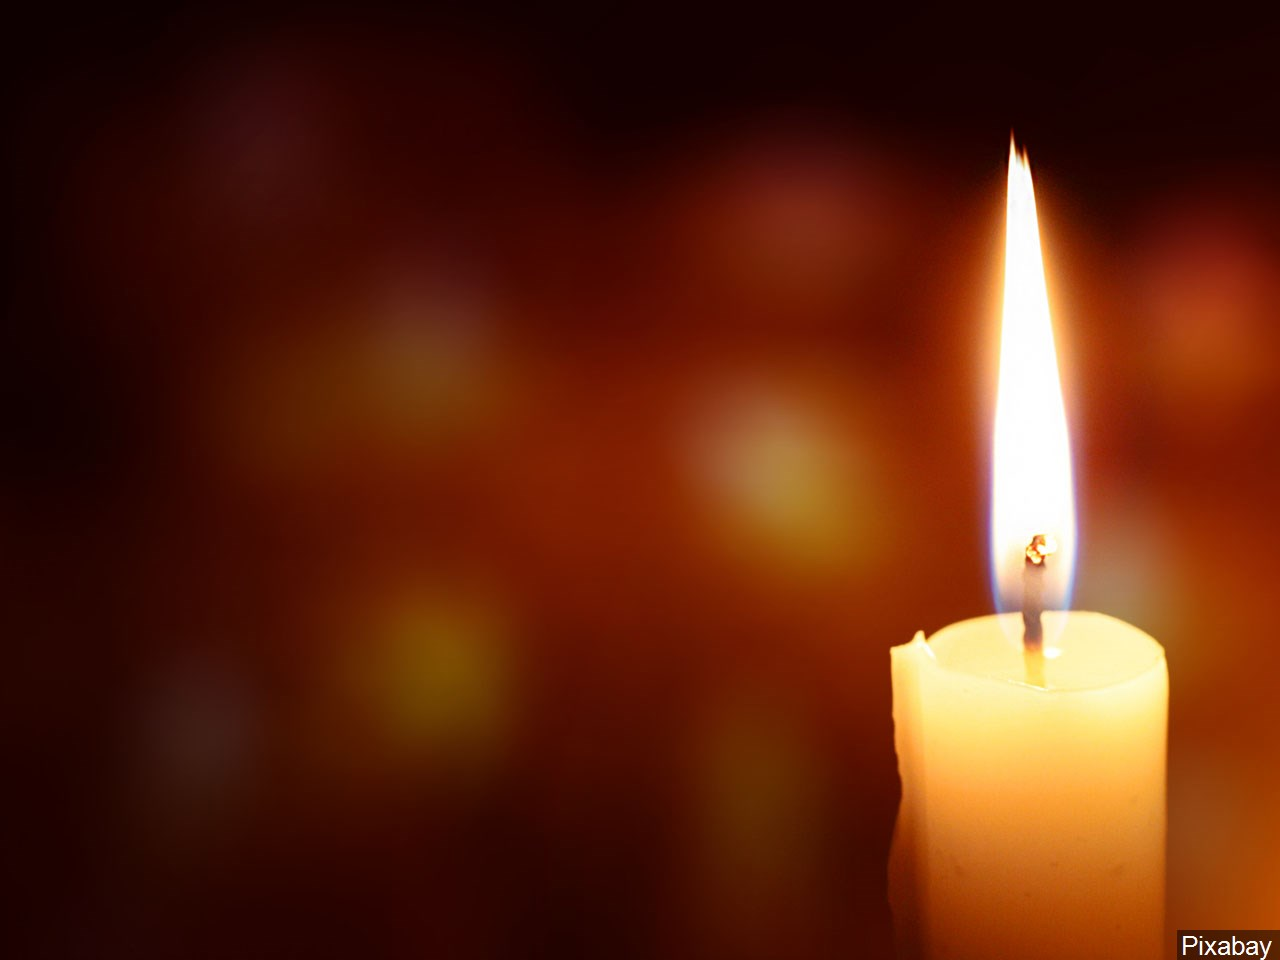 March For Our Lives will host a candlelight vigil today, Dec. 16, to remember those who have been killed or injured since the Sandy Hook tragedy.